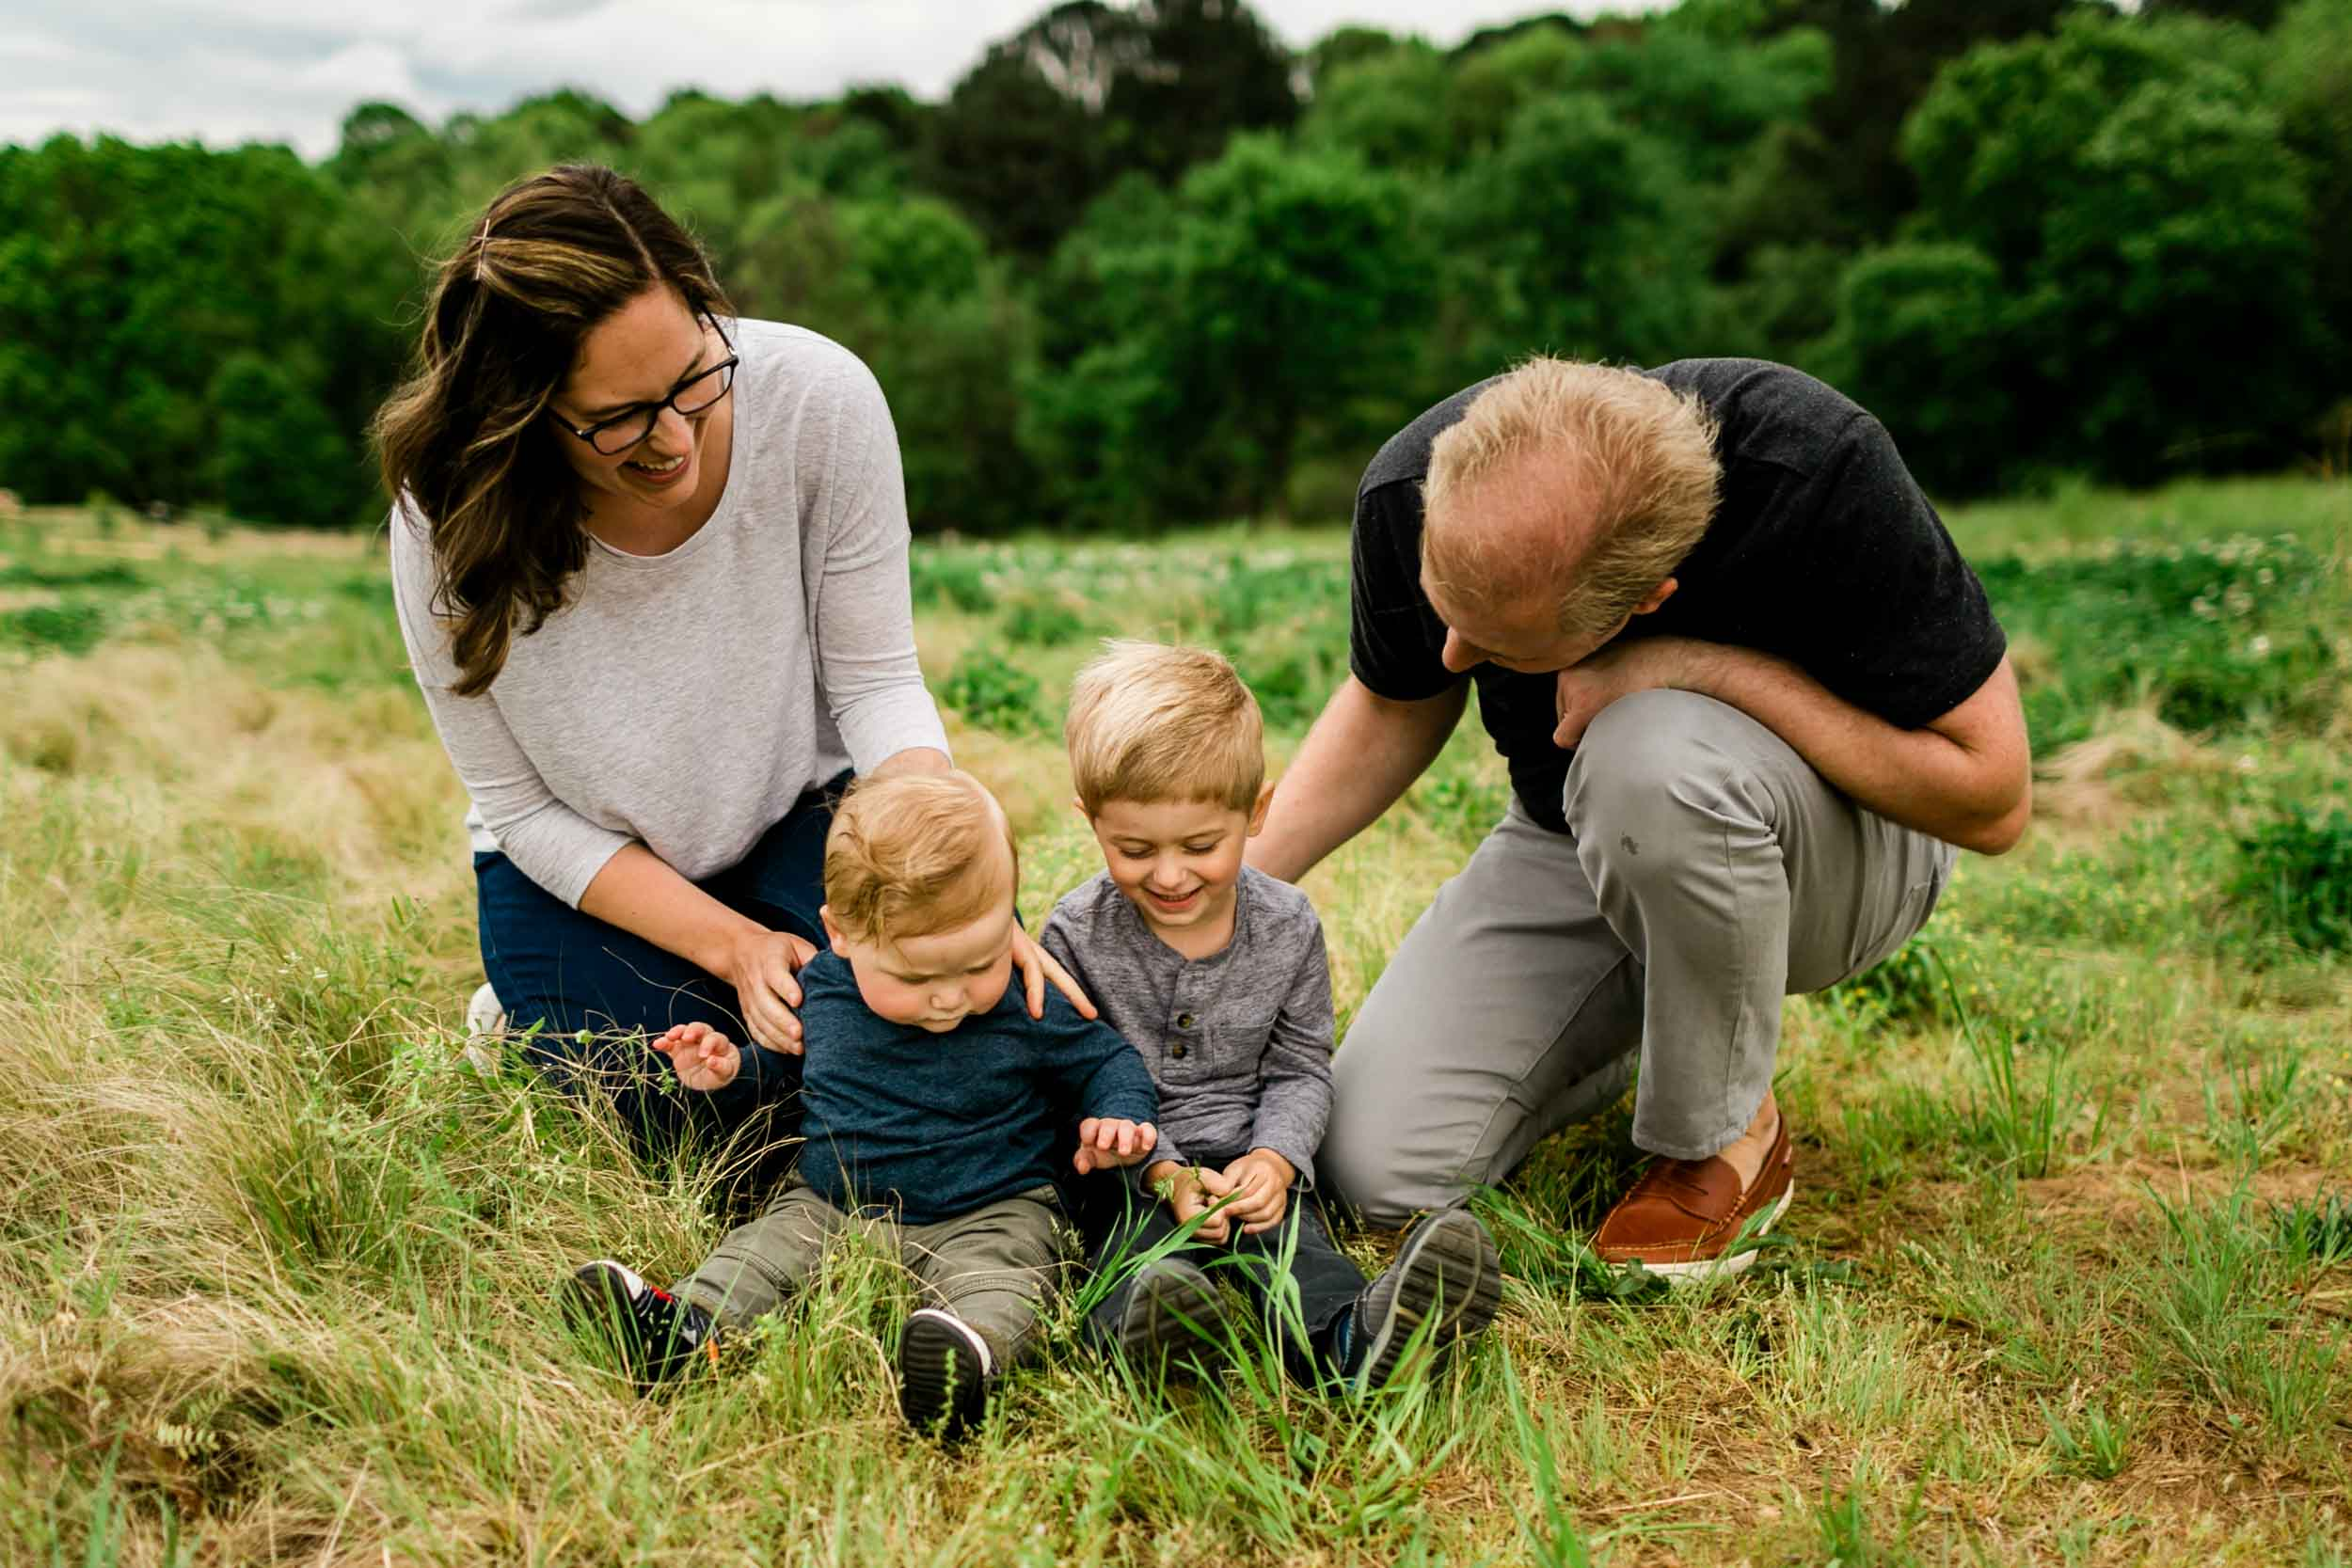 Organic lifestyle family photography outside | Durham Photographer | By G. Lin Photography